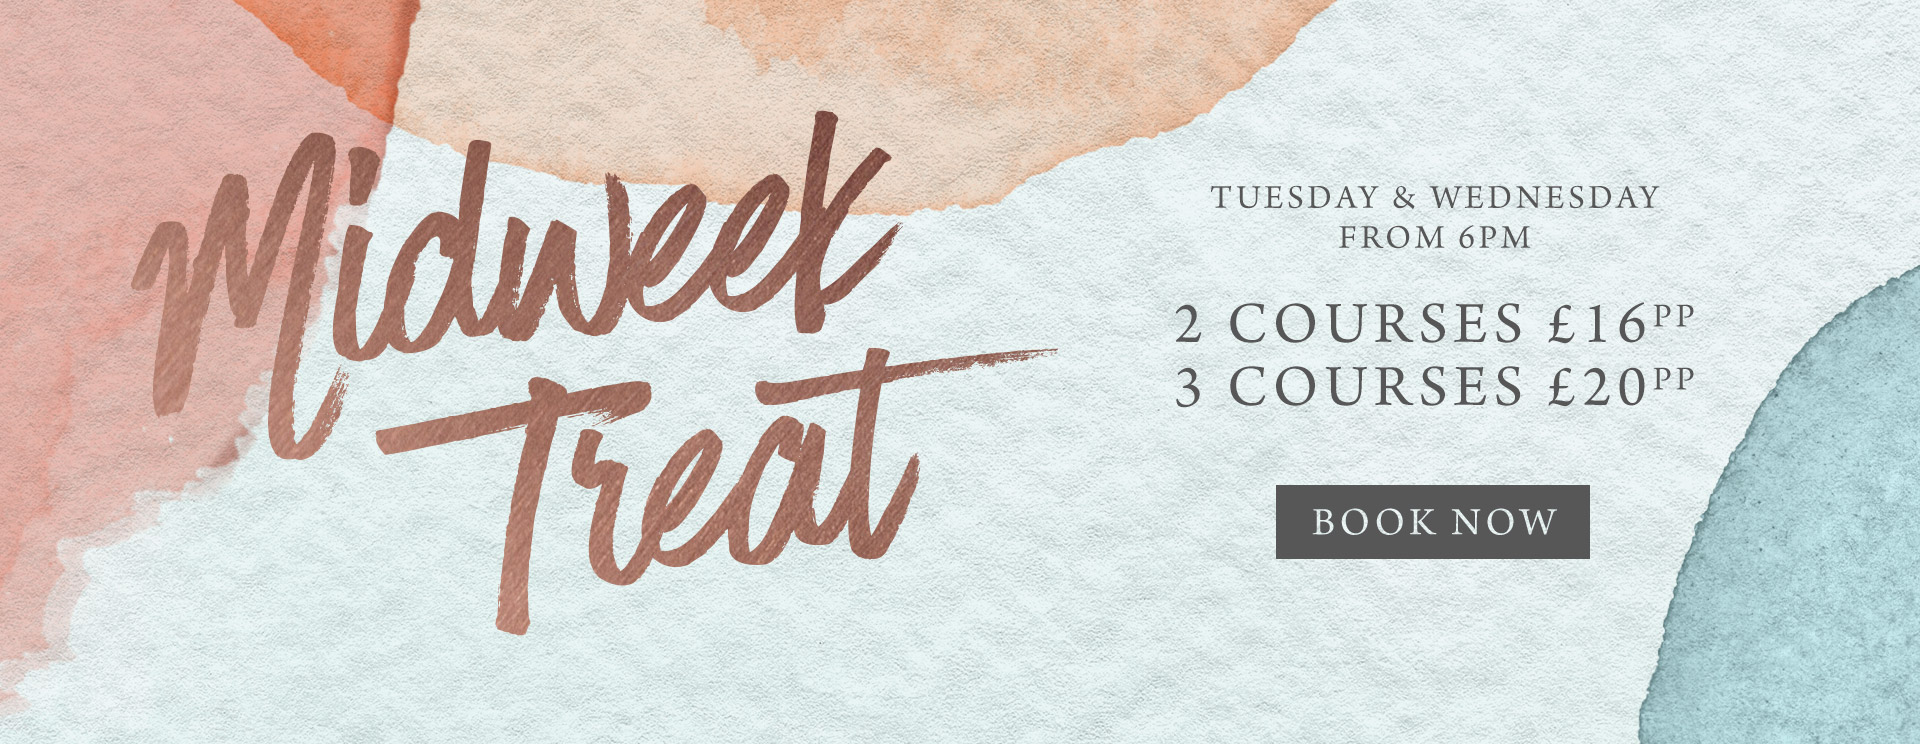 Midweek treat at The Bell - Book now